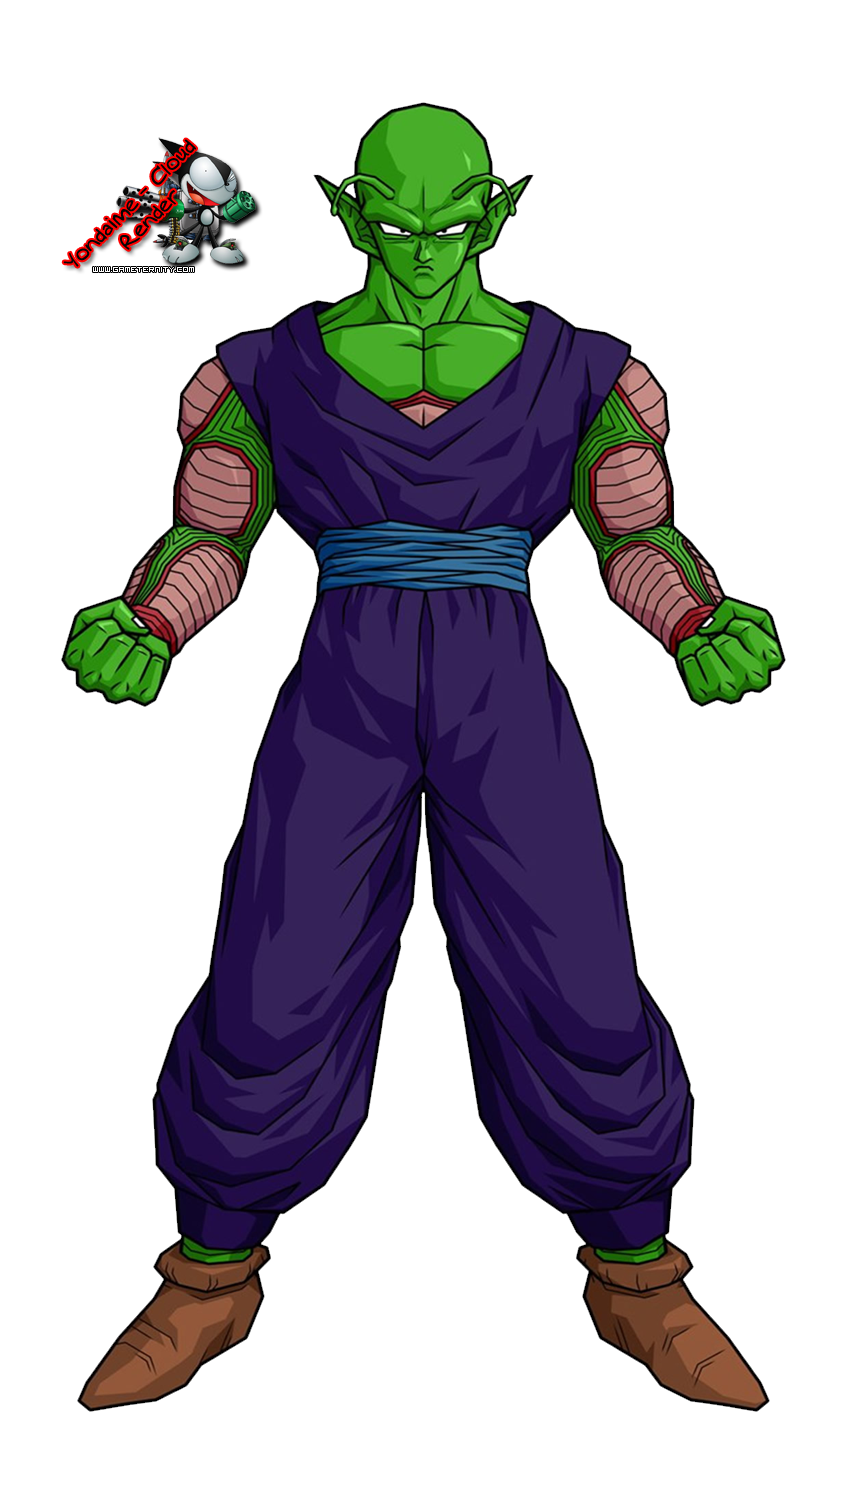 Free Download Dragon Ball Z Wallpapers Piccolo 851x1500 For Your